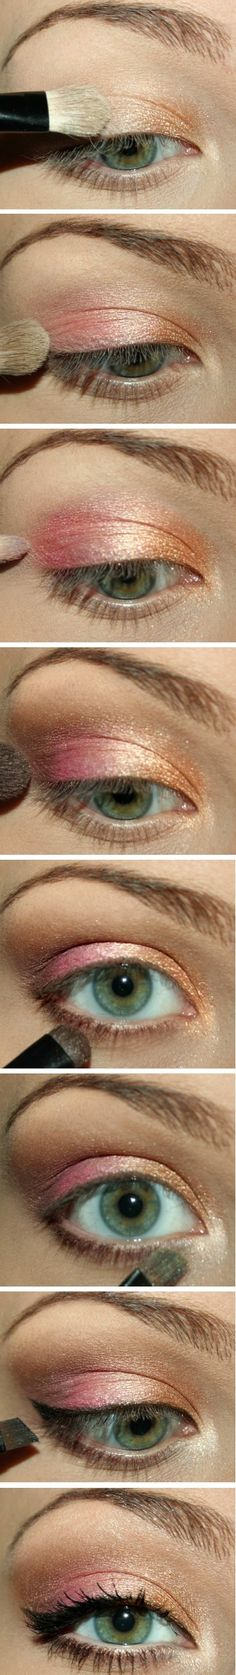 must try eye makeup